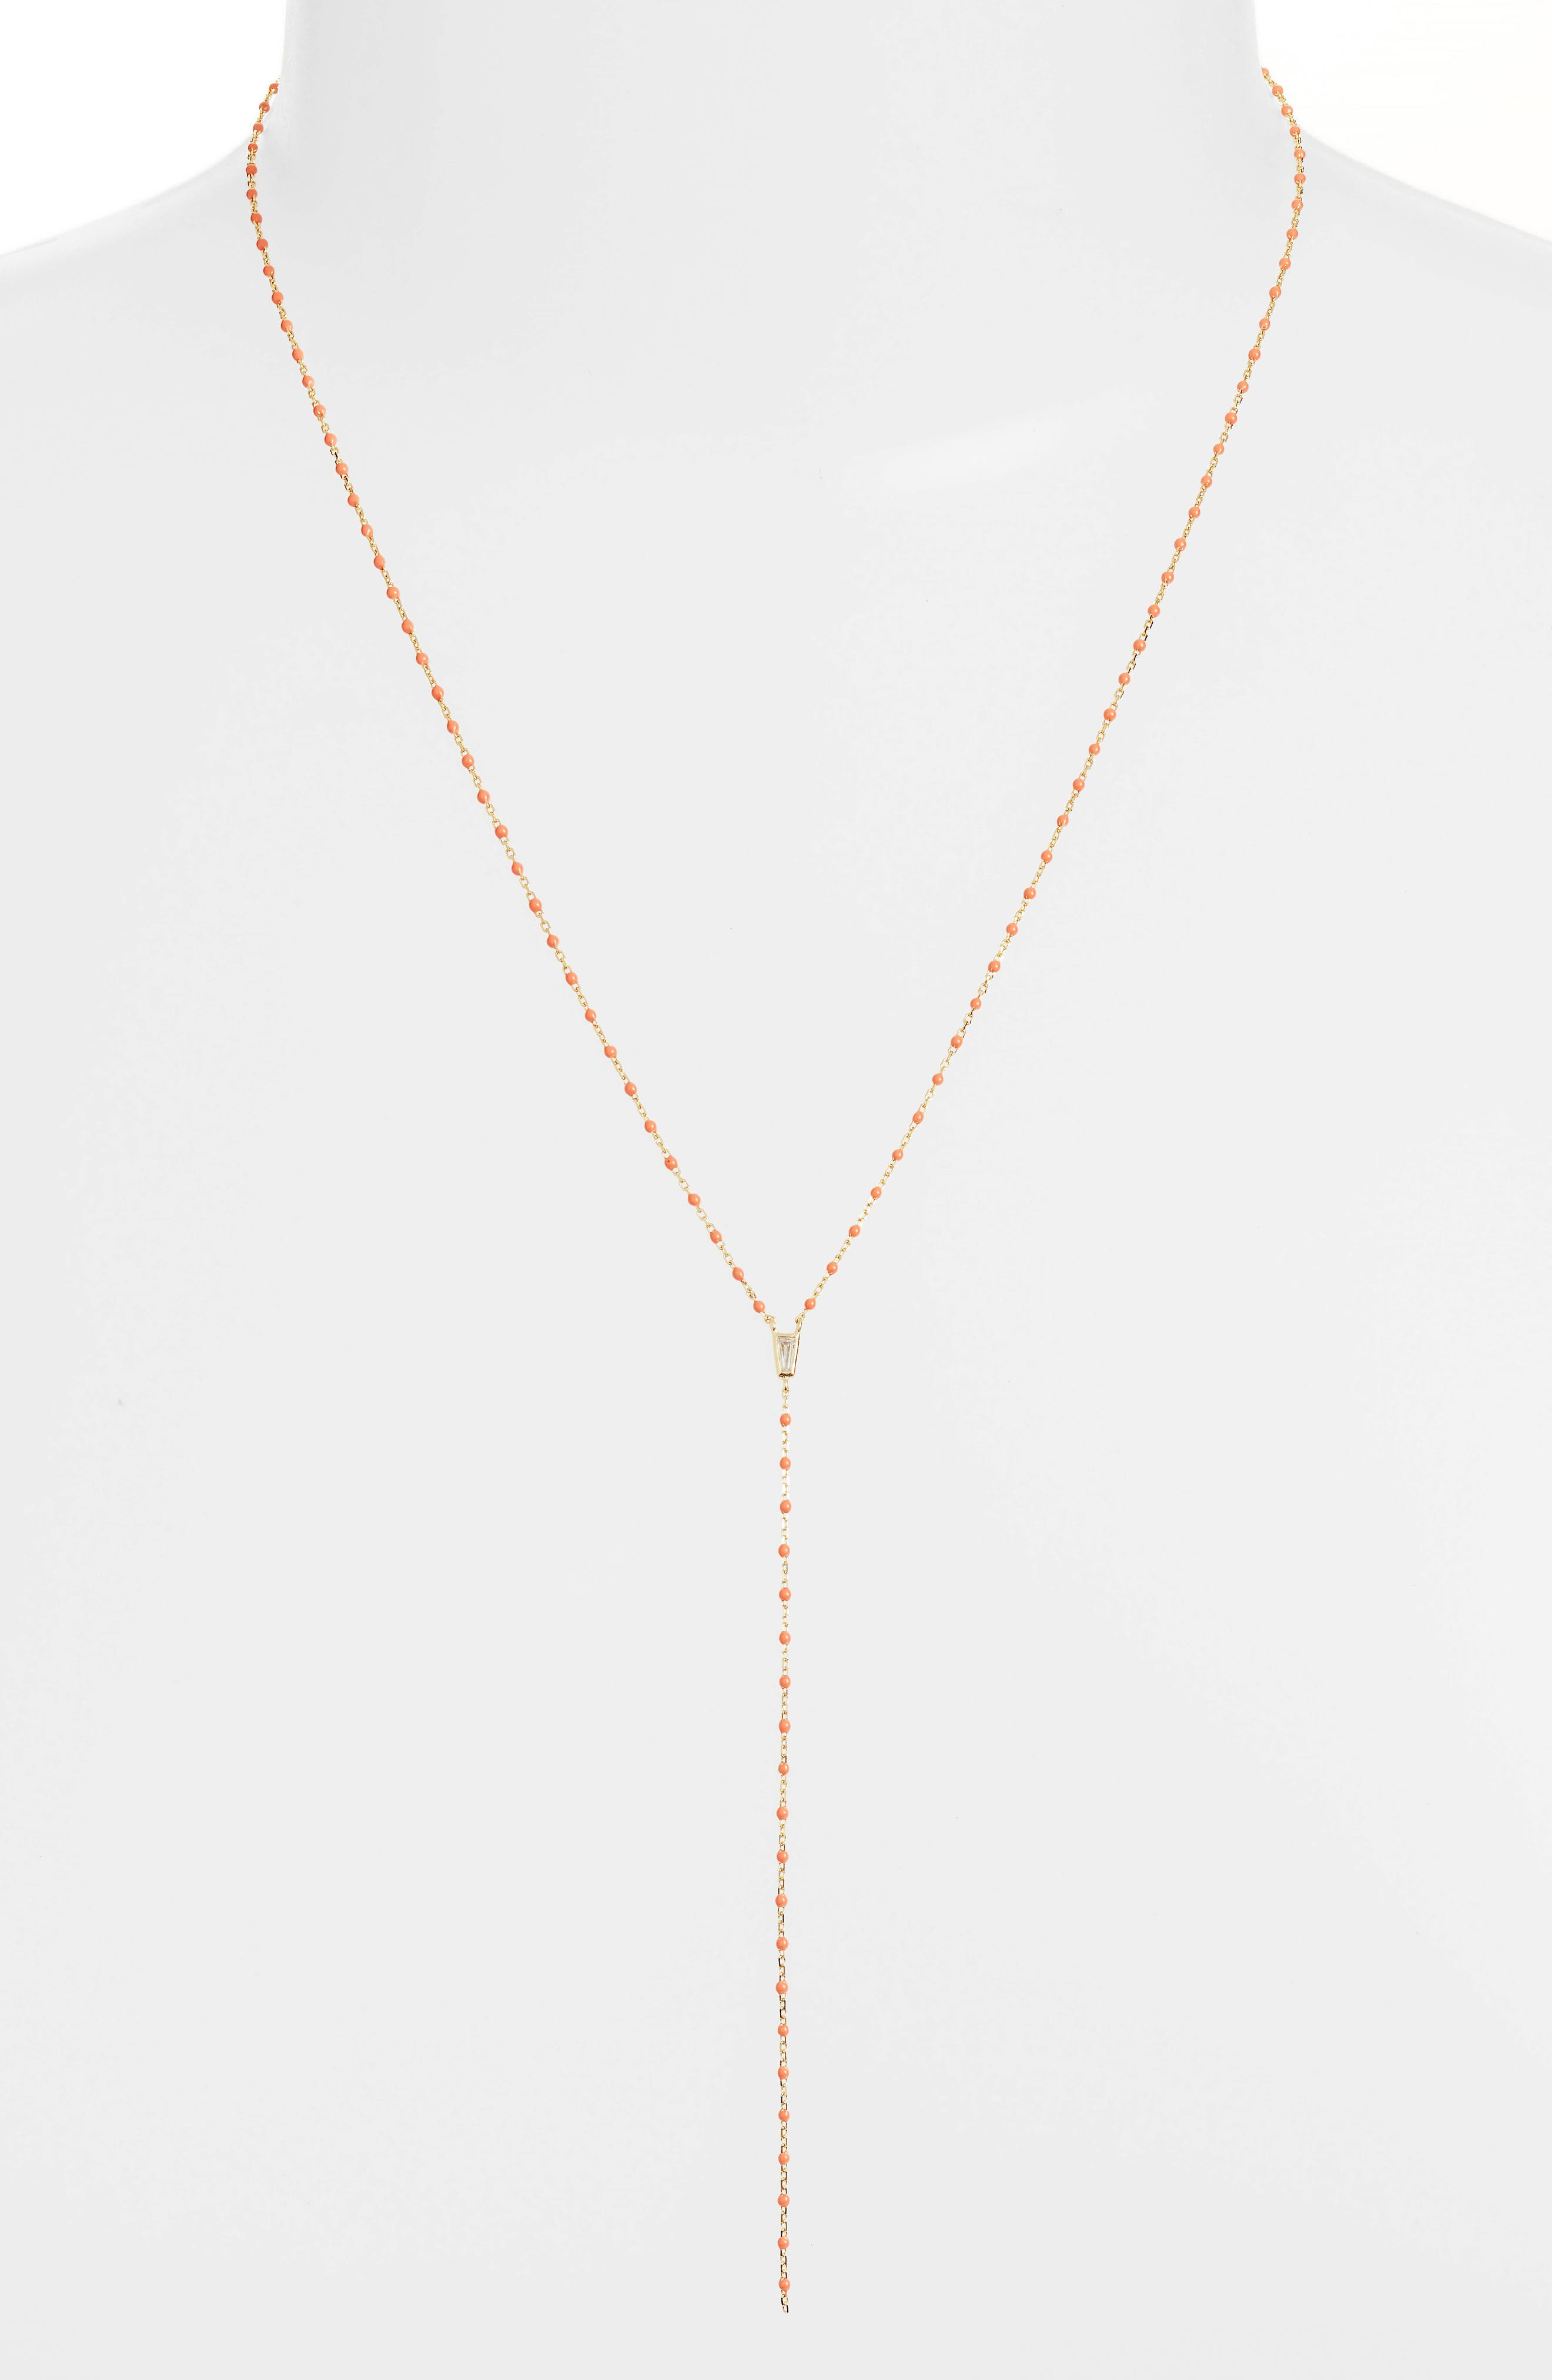 Beaded Lariat Necklace,                             Main thumbnail 1, color,                             Gold/ Coral